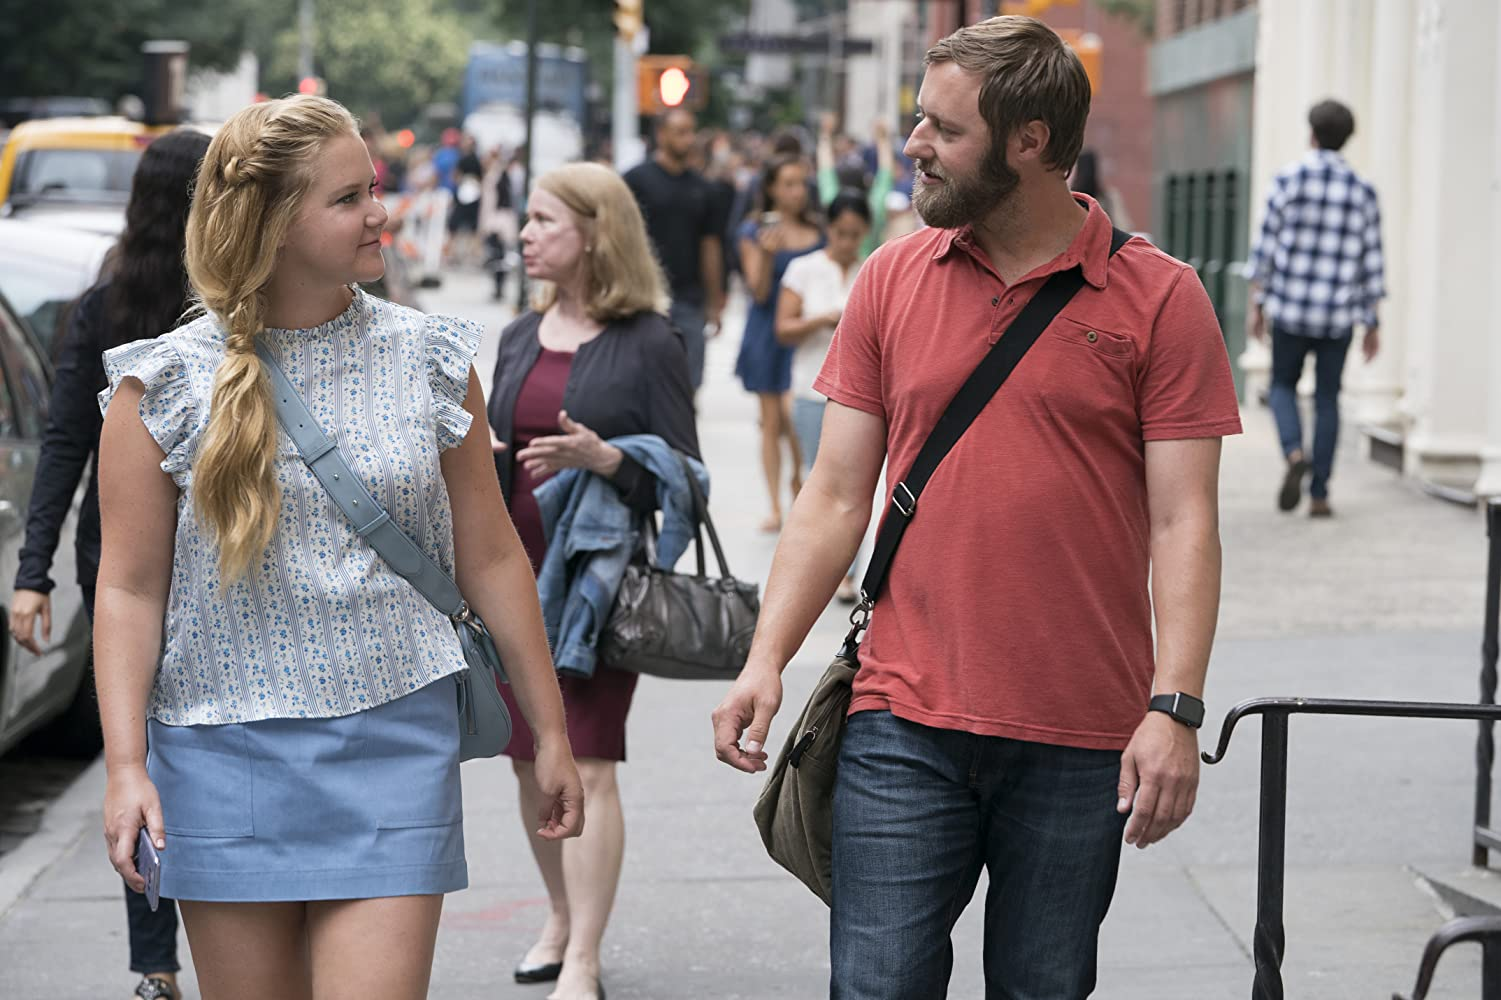 Amy Schumer and Rory Scovel in I Feel Pretty (2018)